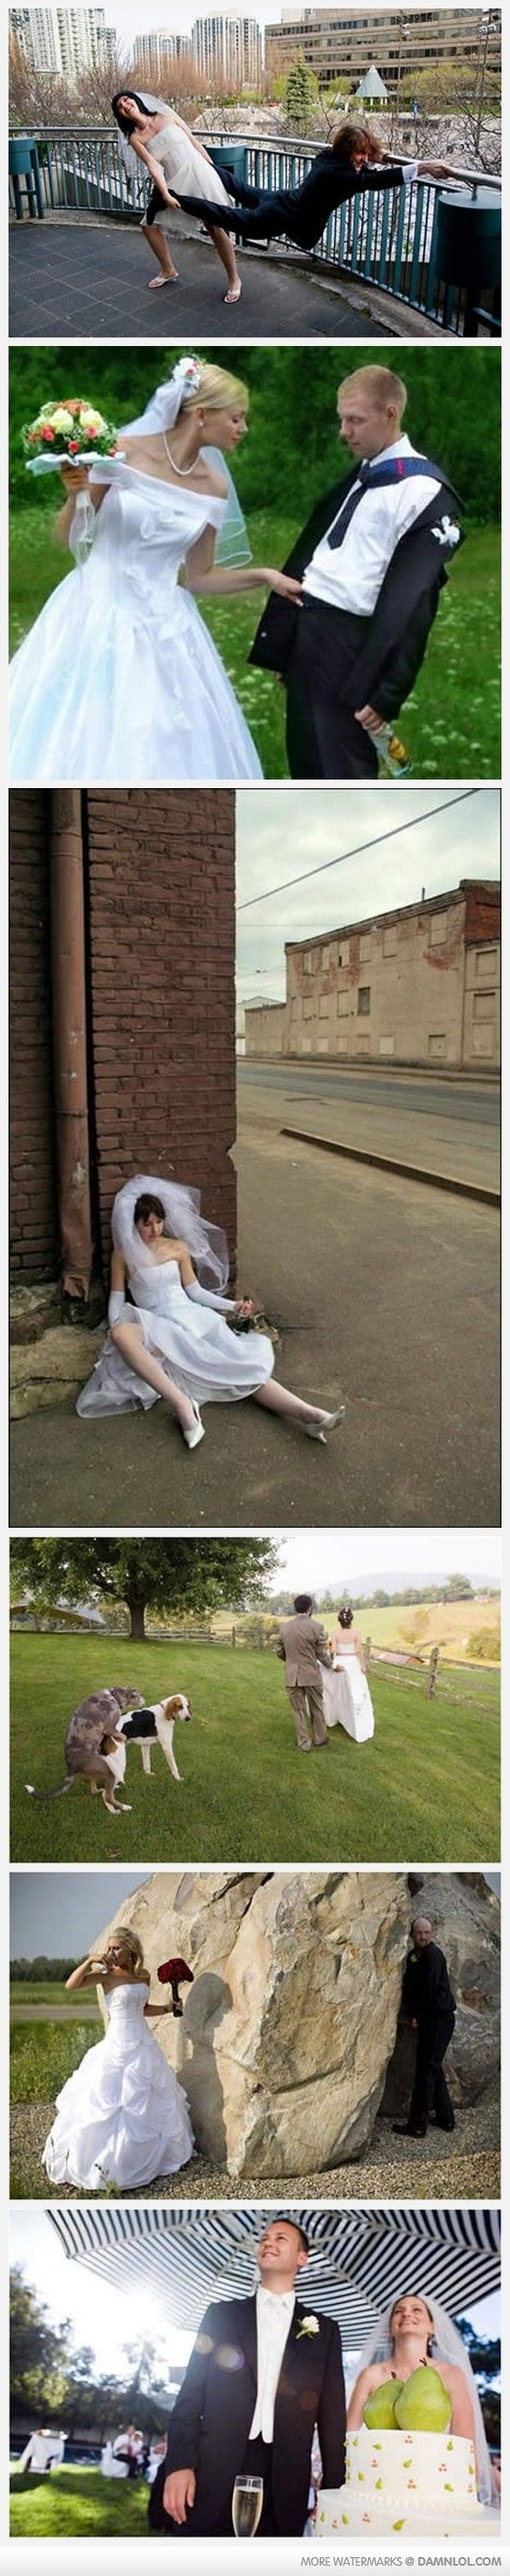 Funny wedding pictures (also on the two previous posts.)